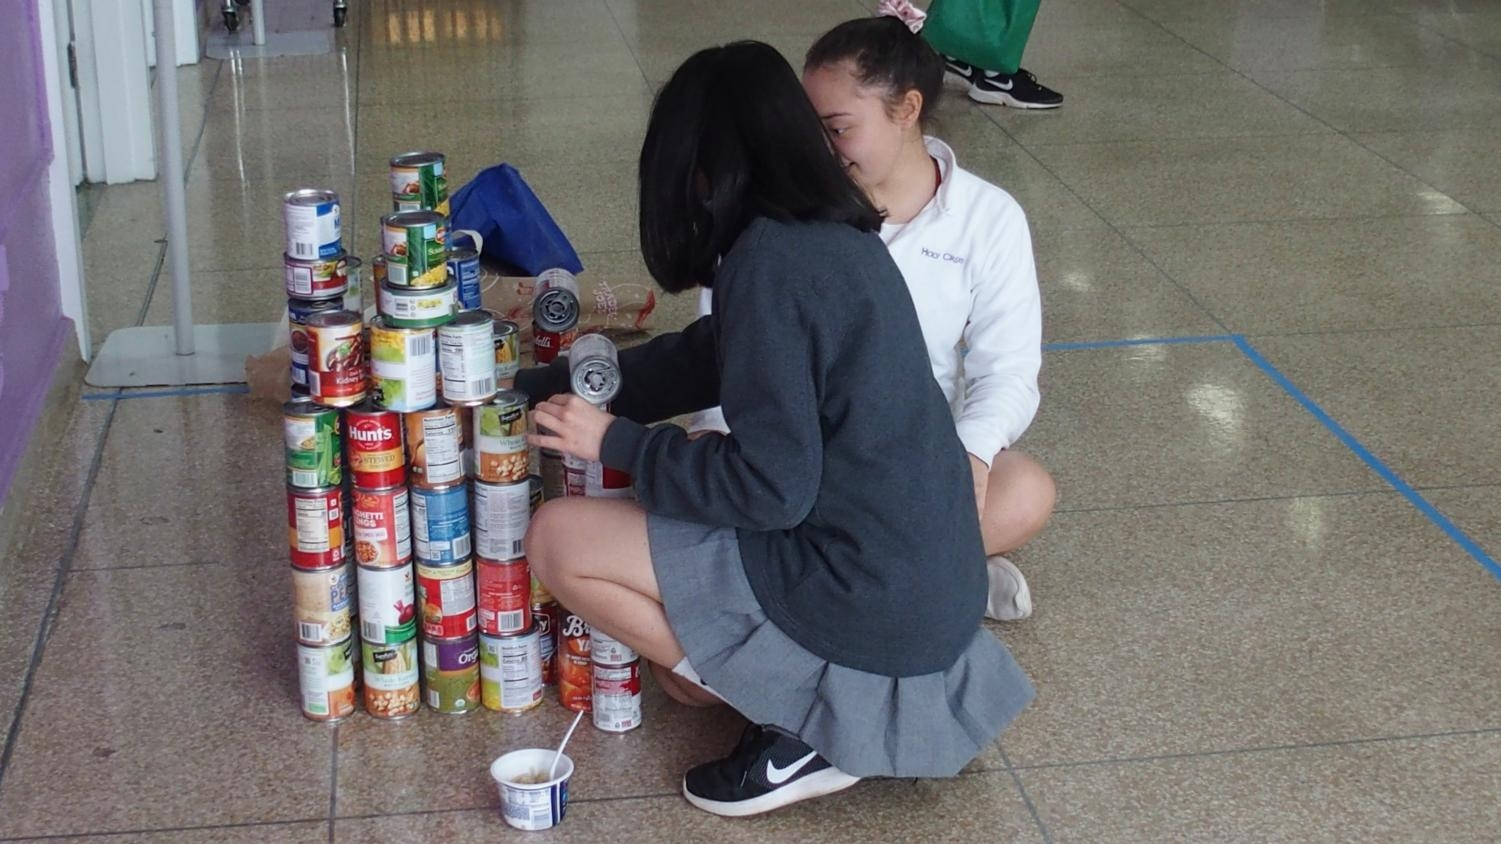 Building out of cans to help those in need.